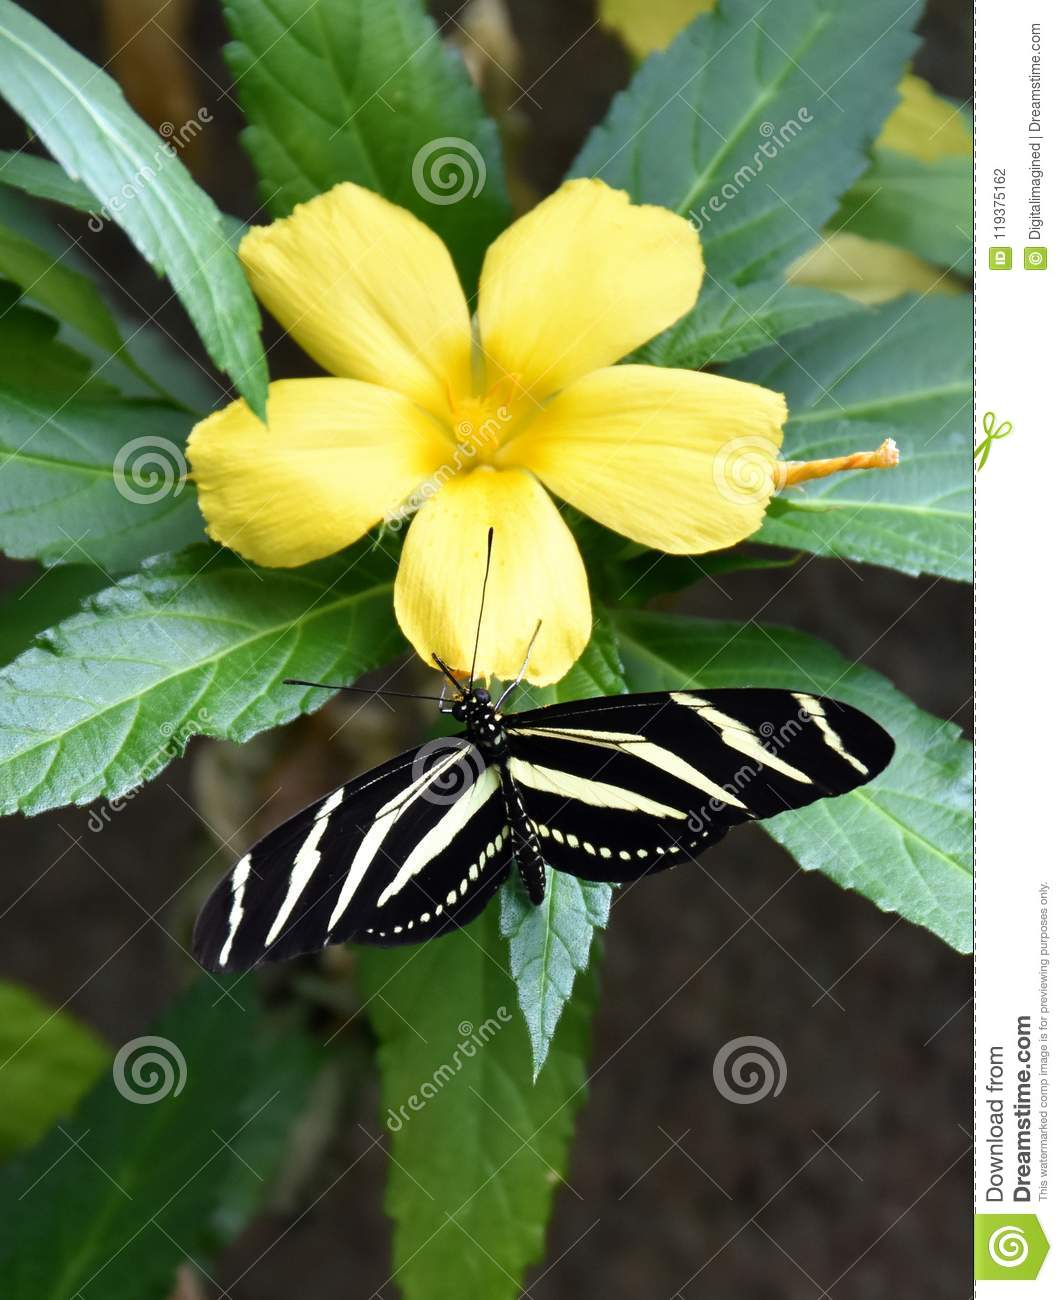 Heliconius Charithonia Black And White Striped Butterfly Stock Photo